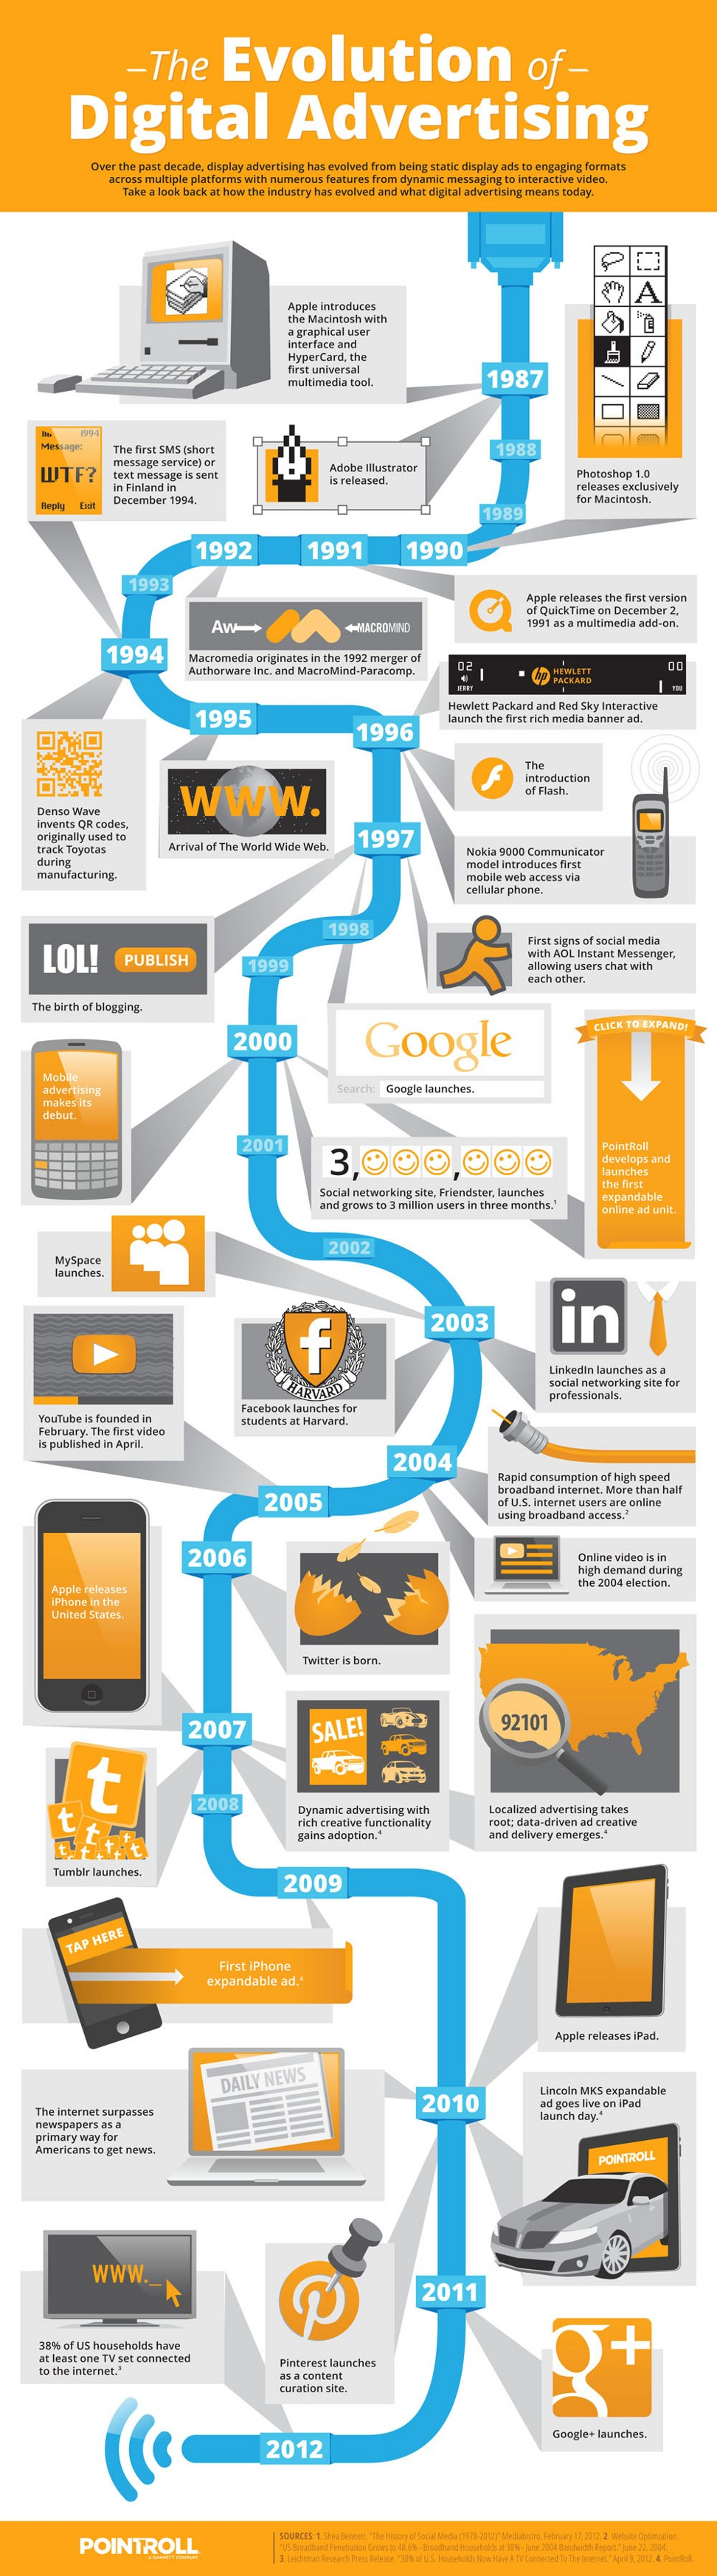 Digital Advertising History-Infographic